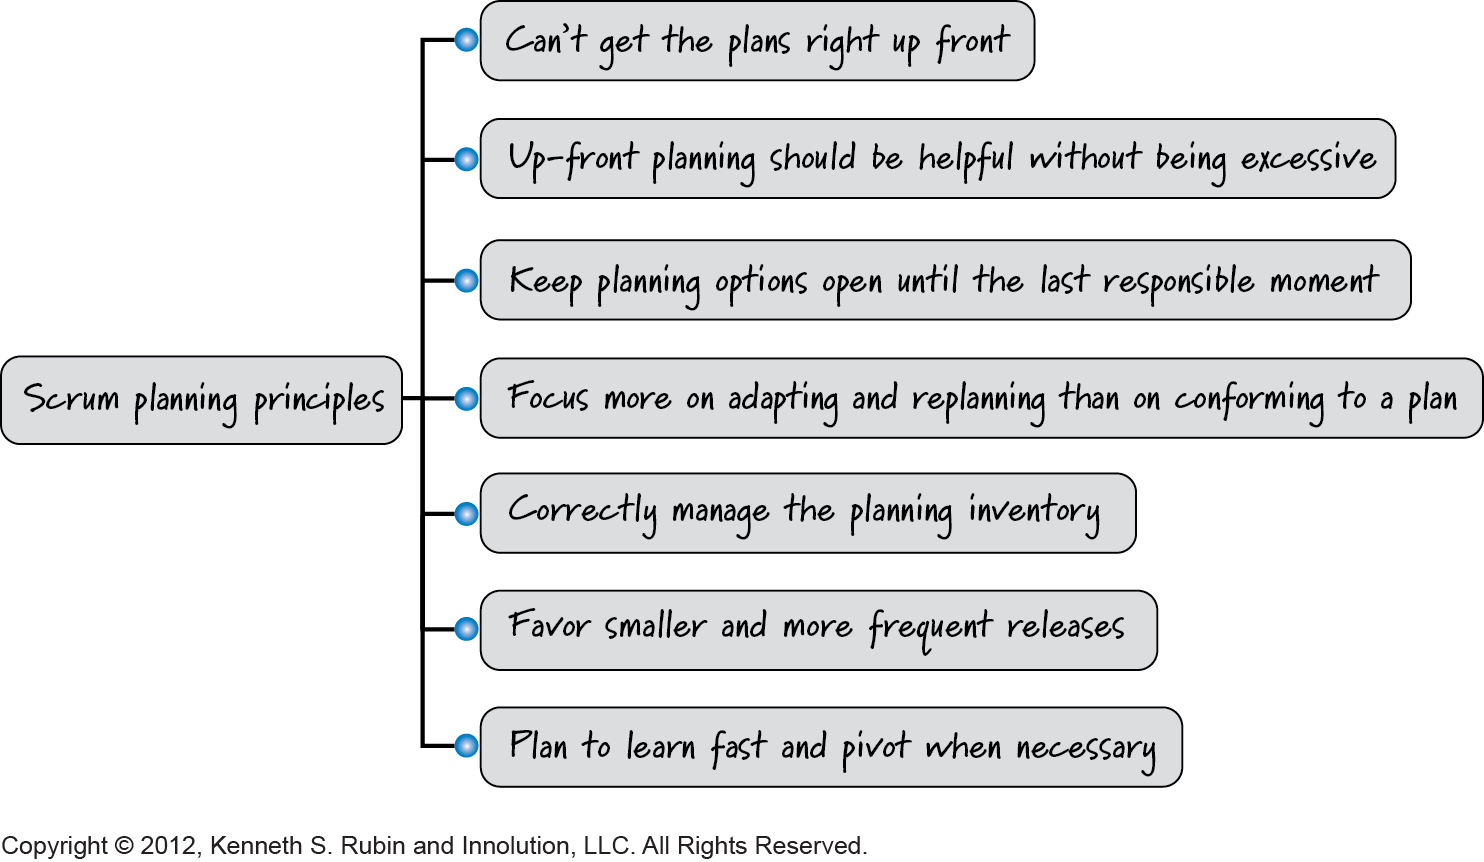 Scrum Planning Principles: 7 Ways Scrum Teams Plan Differently